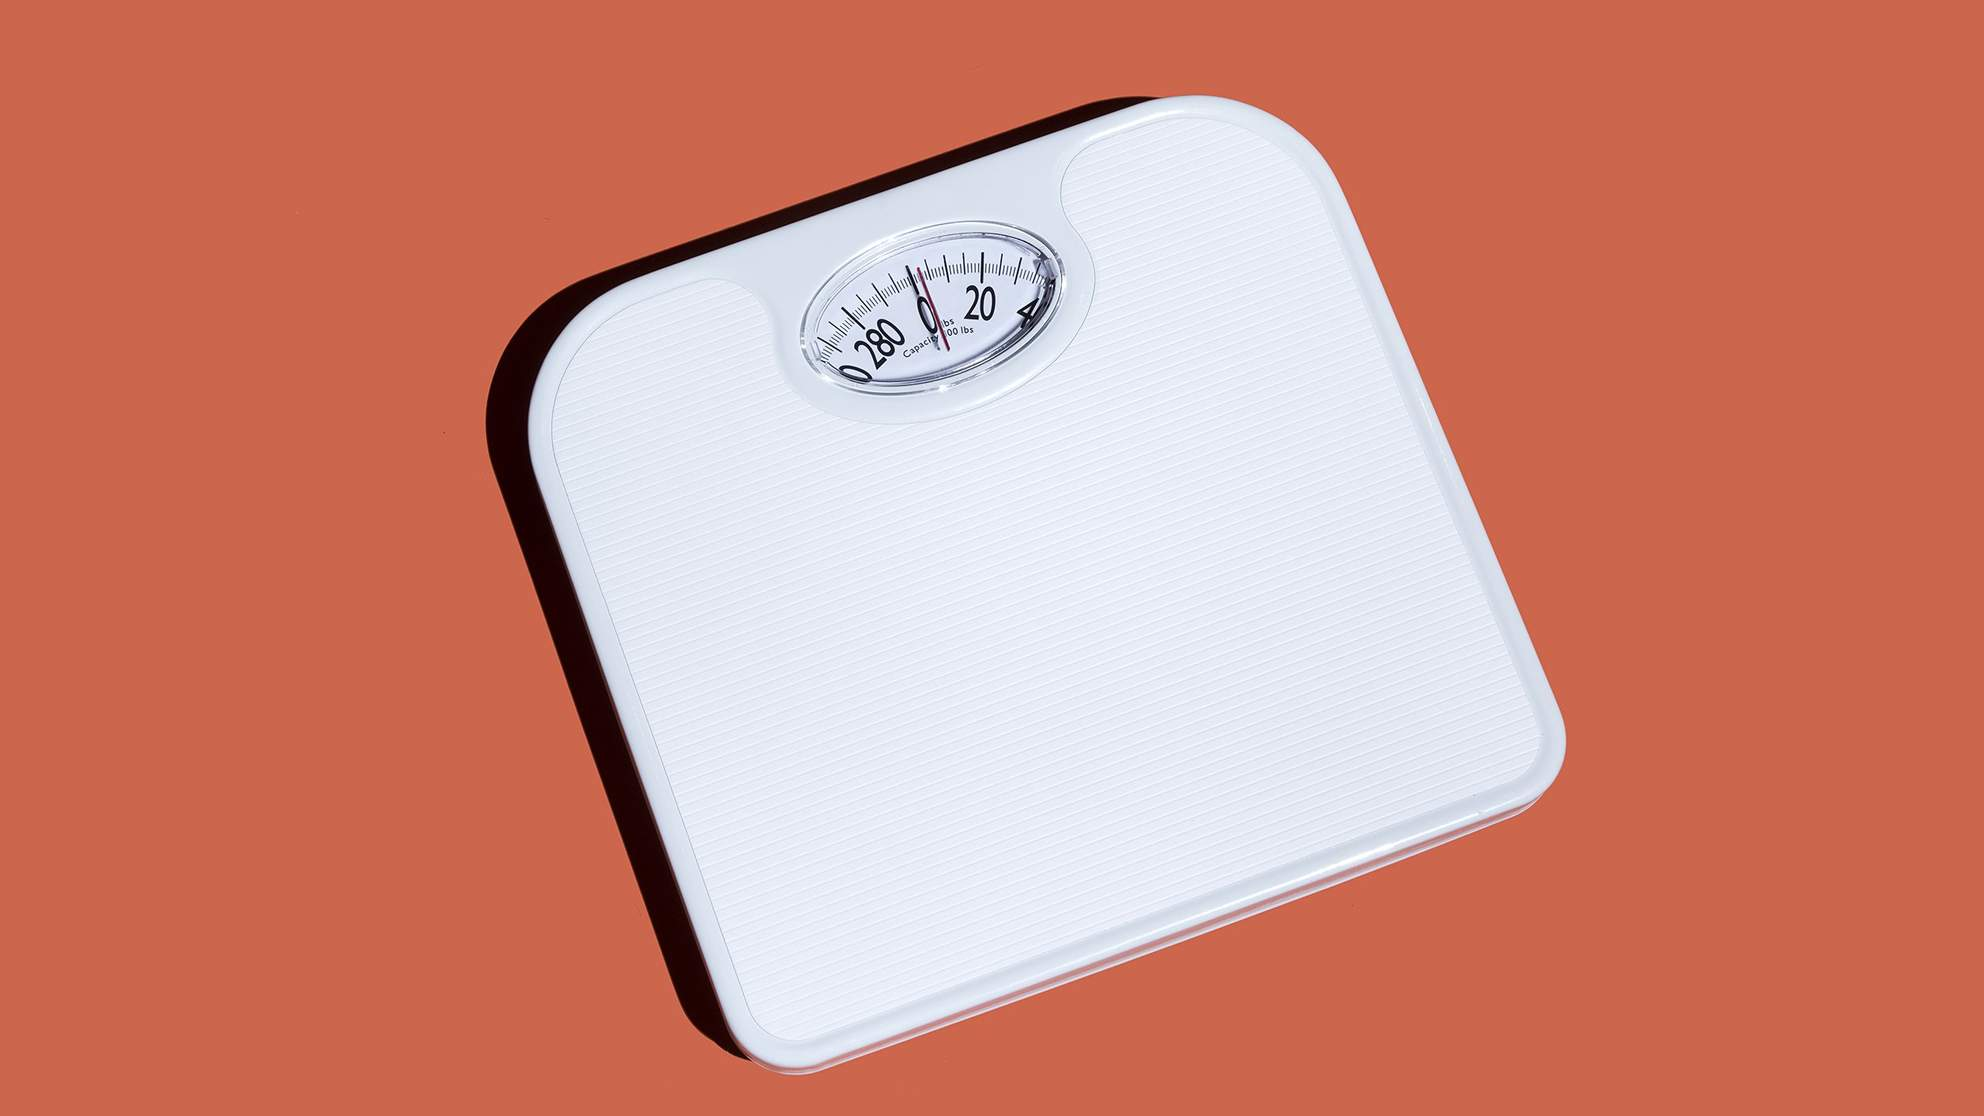 scale-3-weight-body-image-diet-health-fitness-betterment-motto-stock